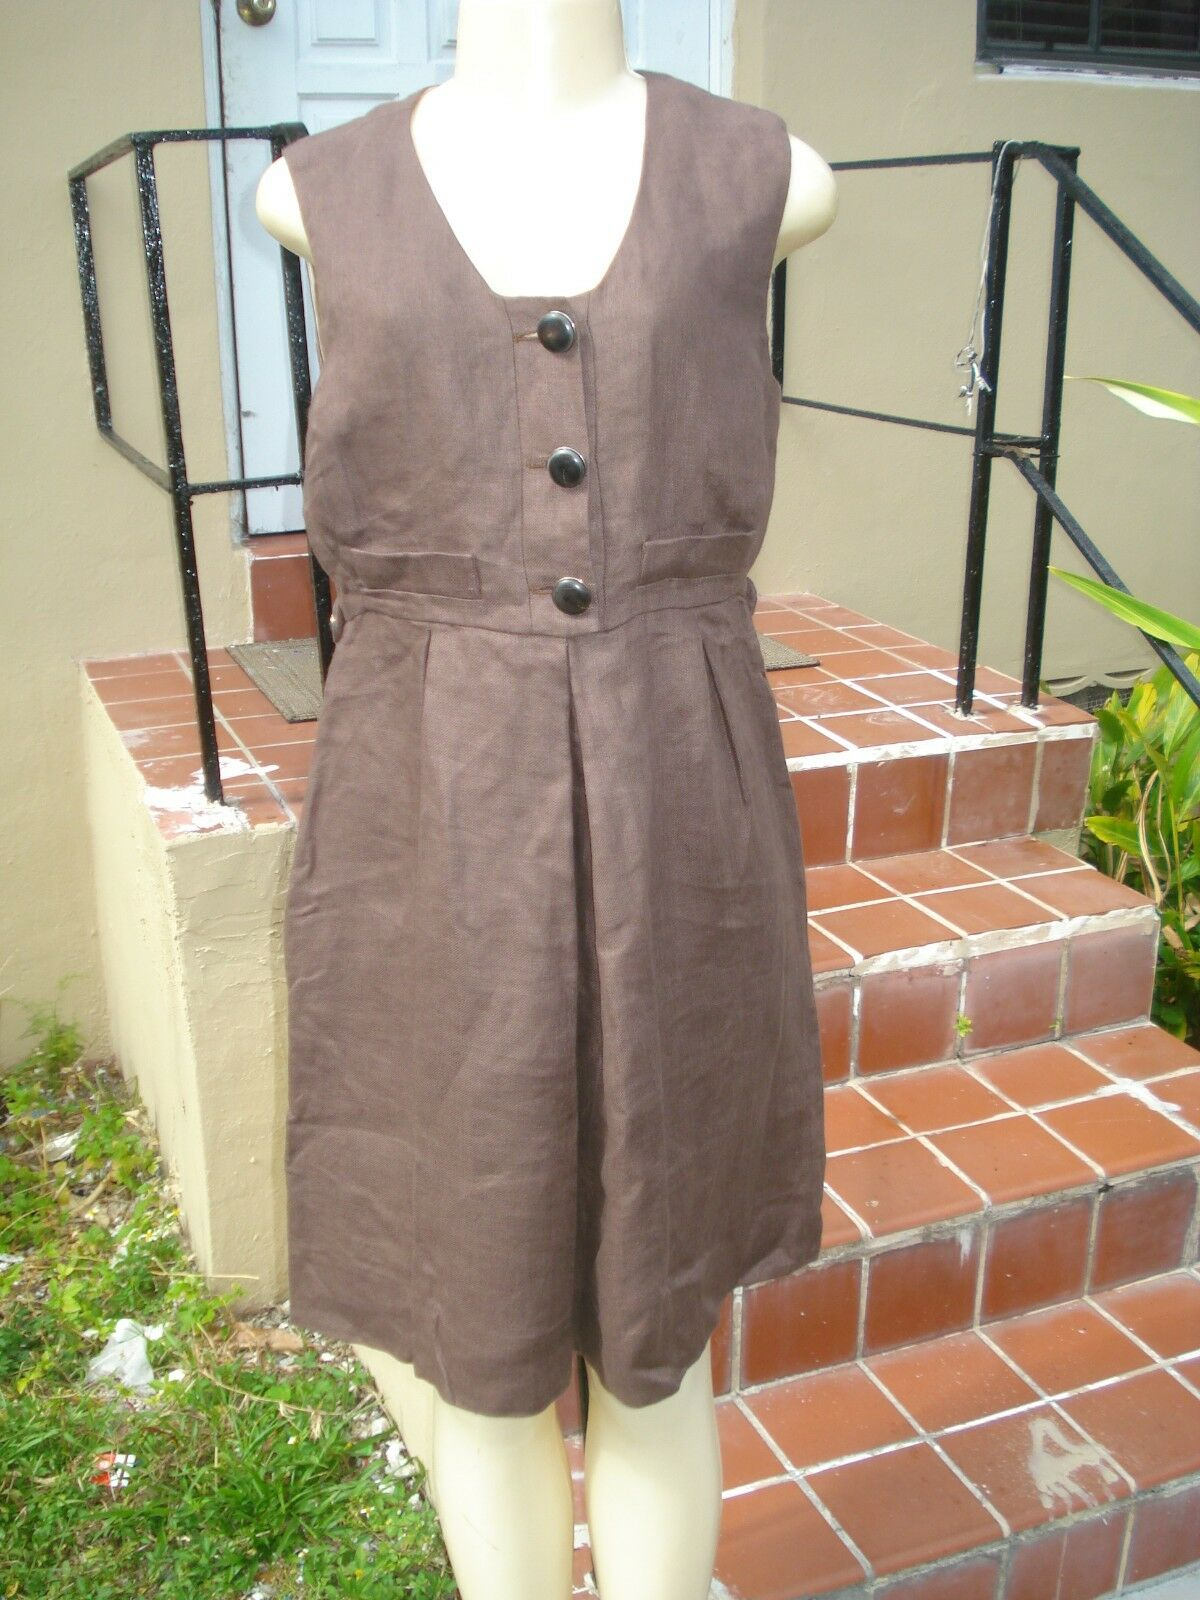 VINTAGE CHLOE BROWN SLEEVELESS LINEN BLEND CASUAL DRESS Sz 40 MADE IN ITALY